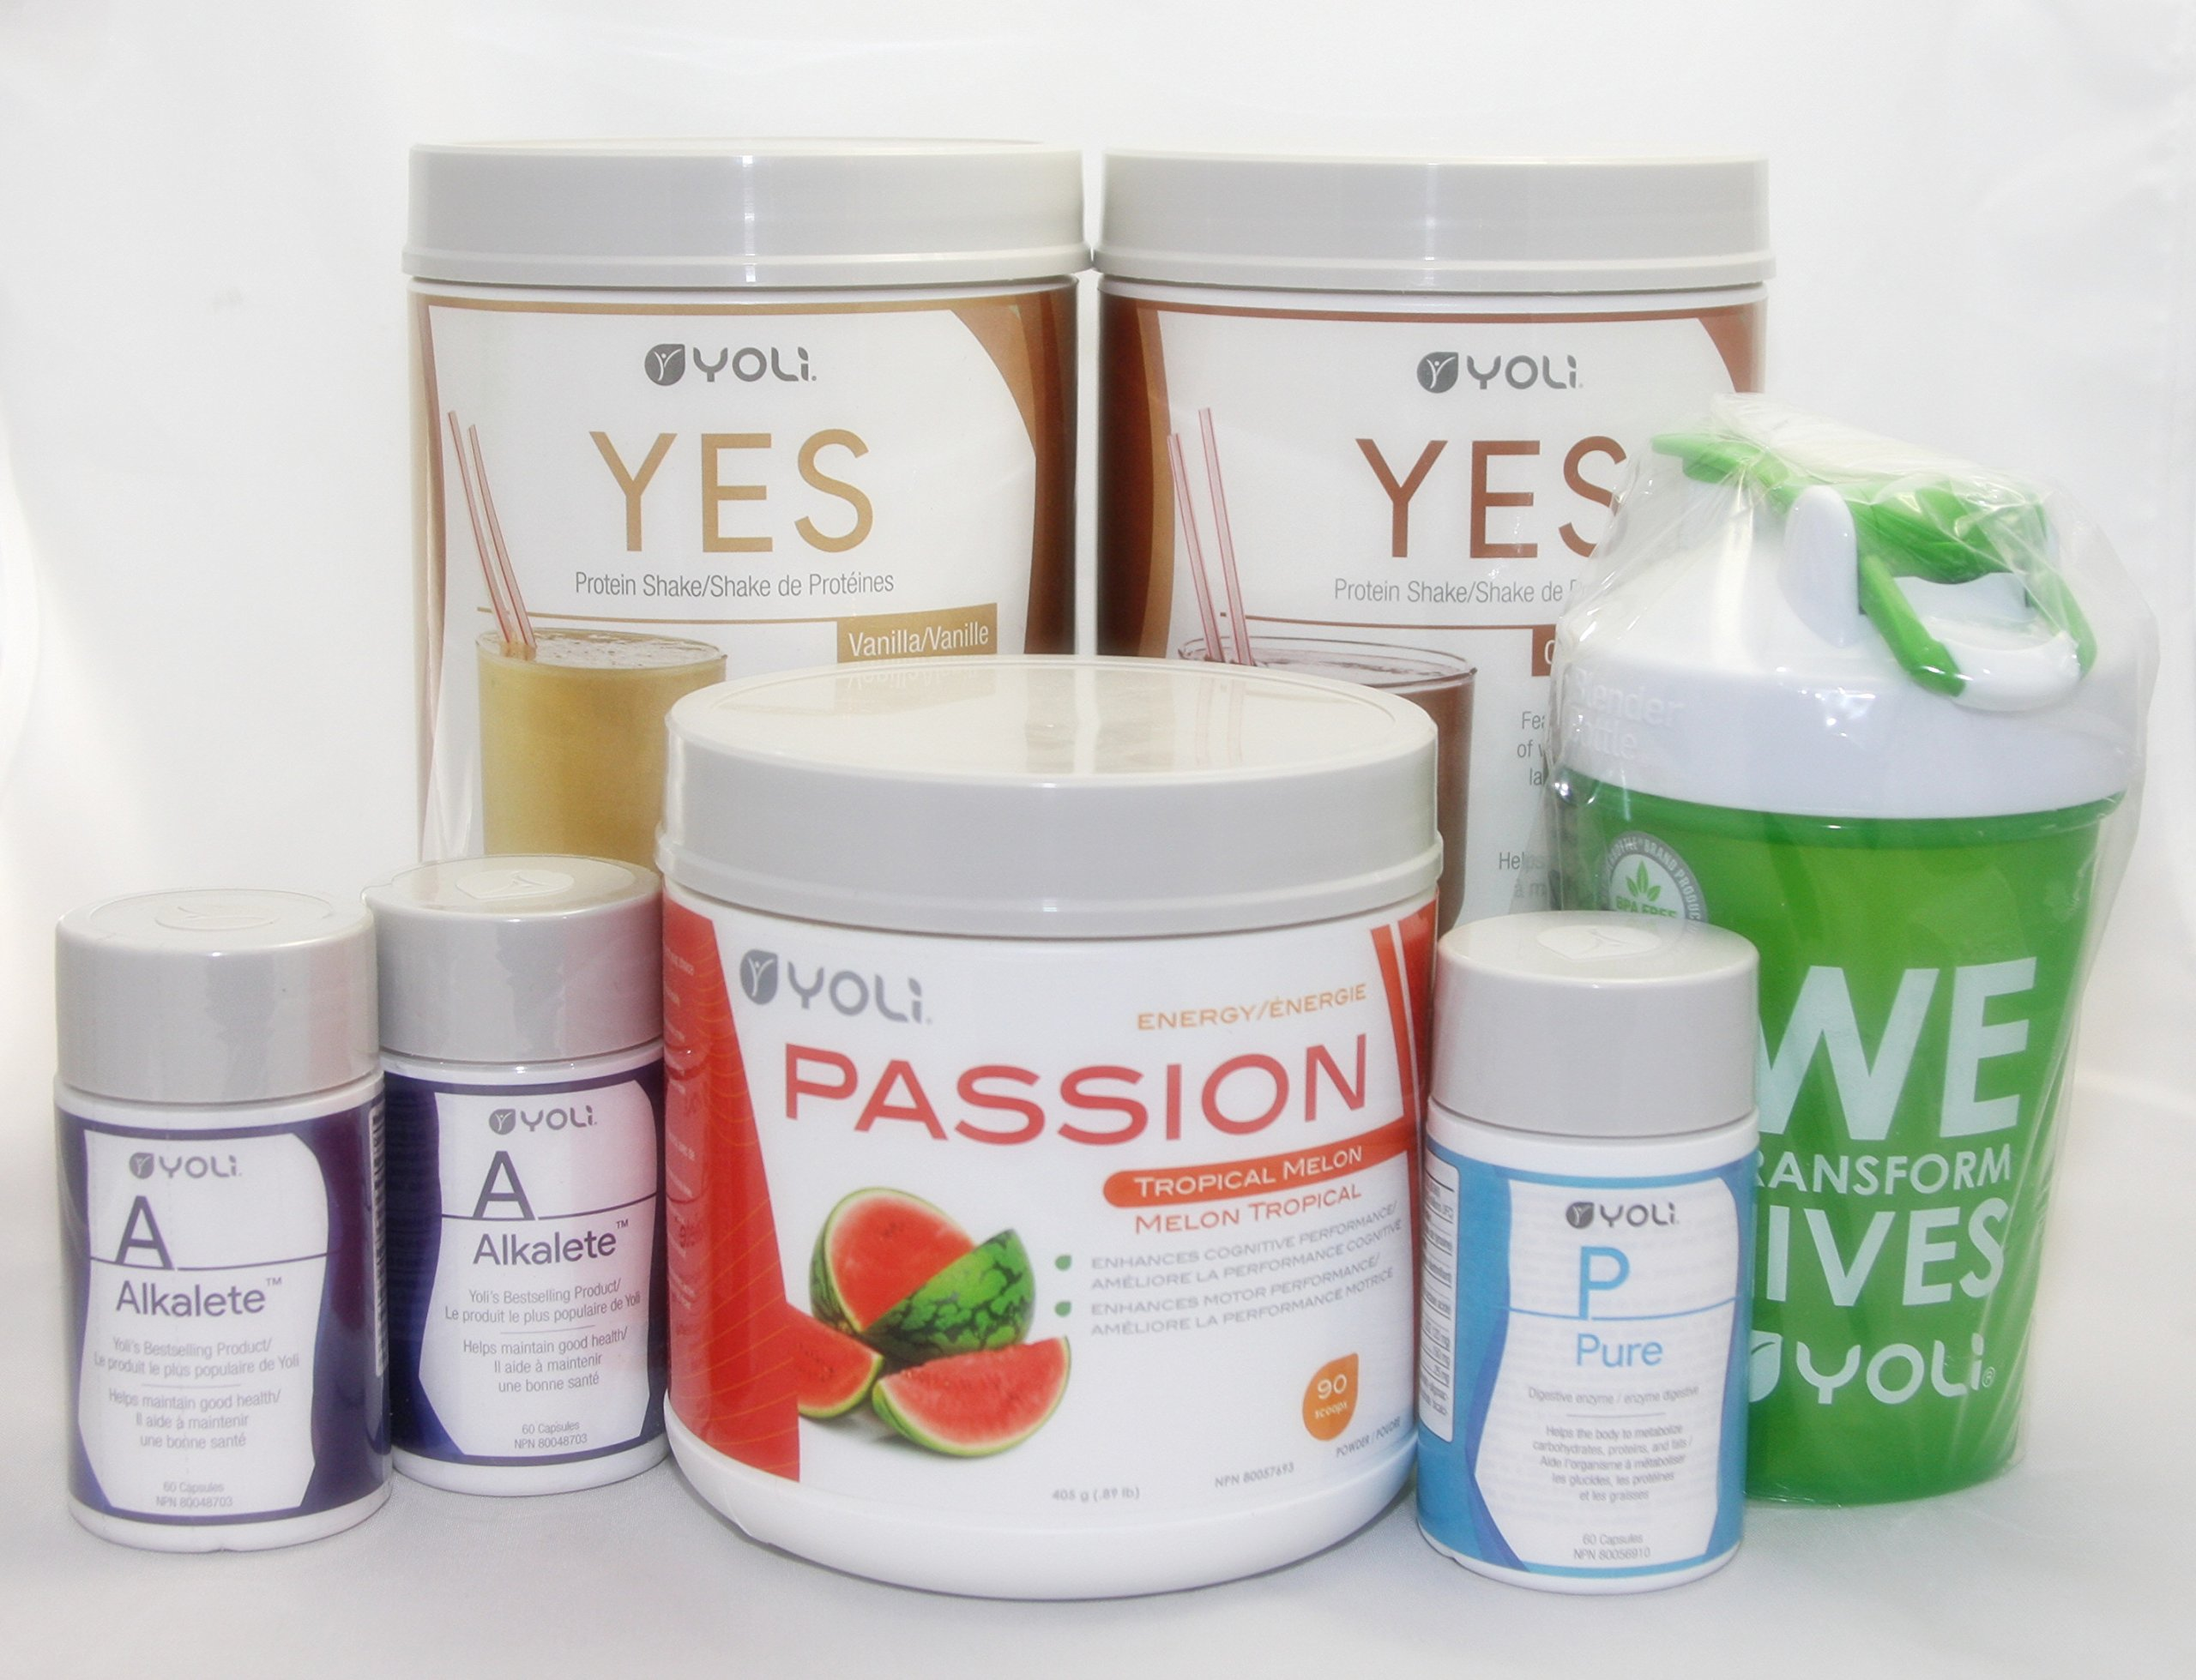 Yoli Better Body System - 30 Day Transformation Kit Weight Loss System - Passion Tropical Melon [CANADA]